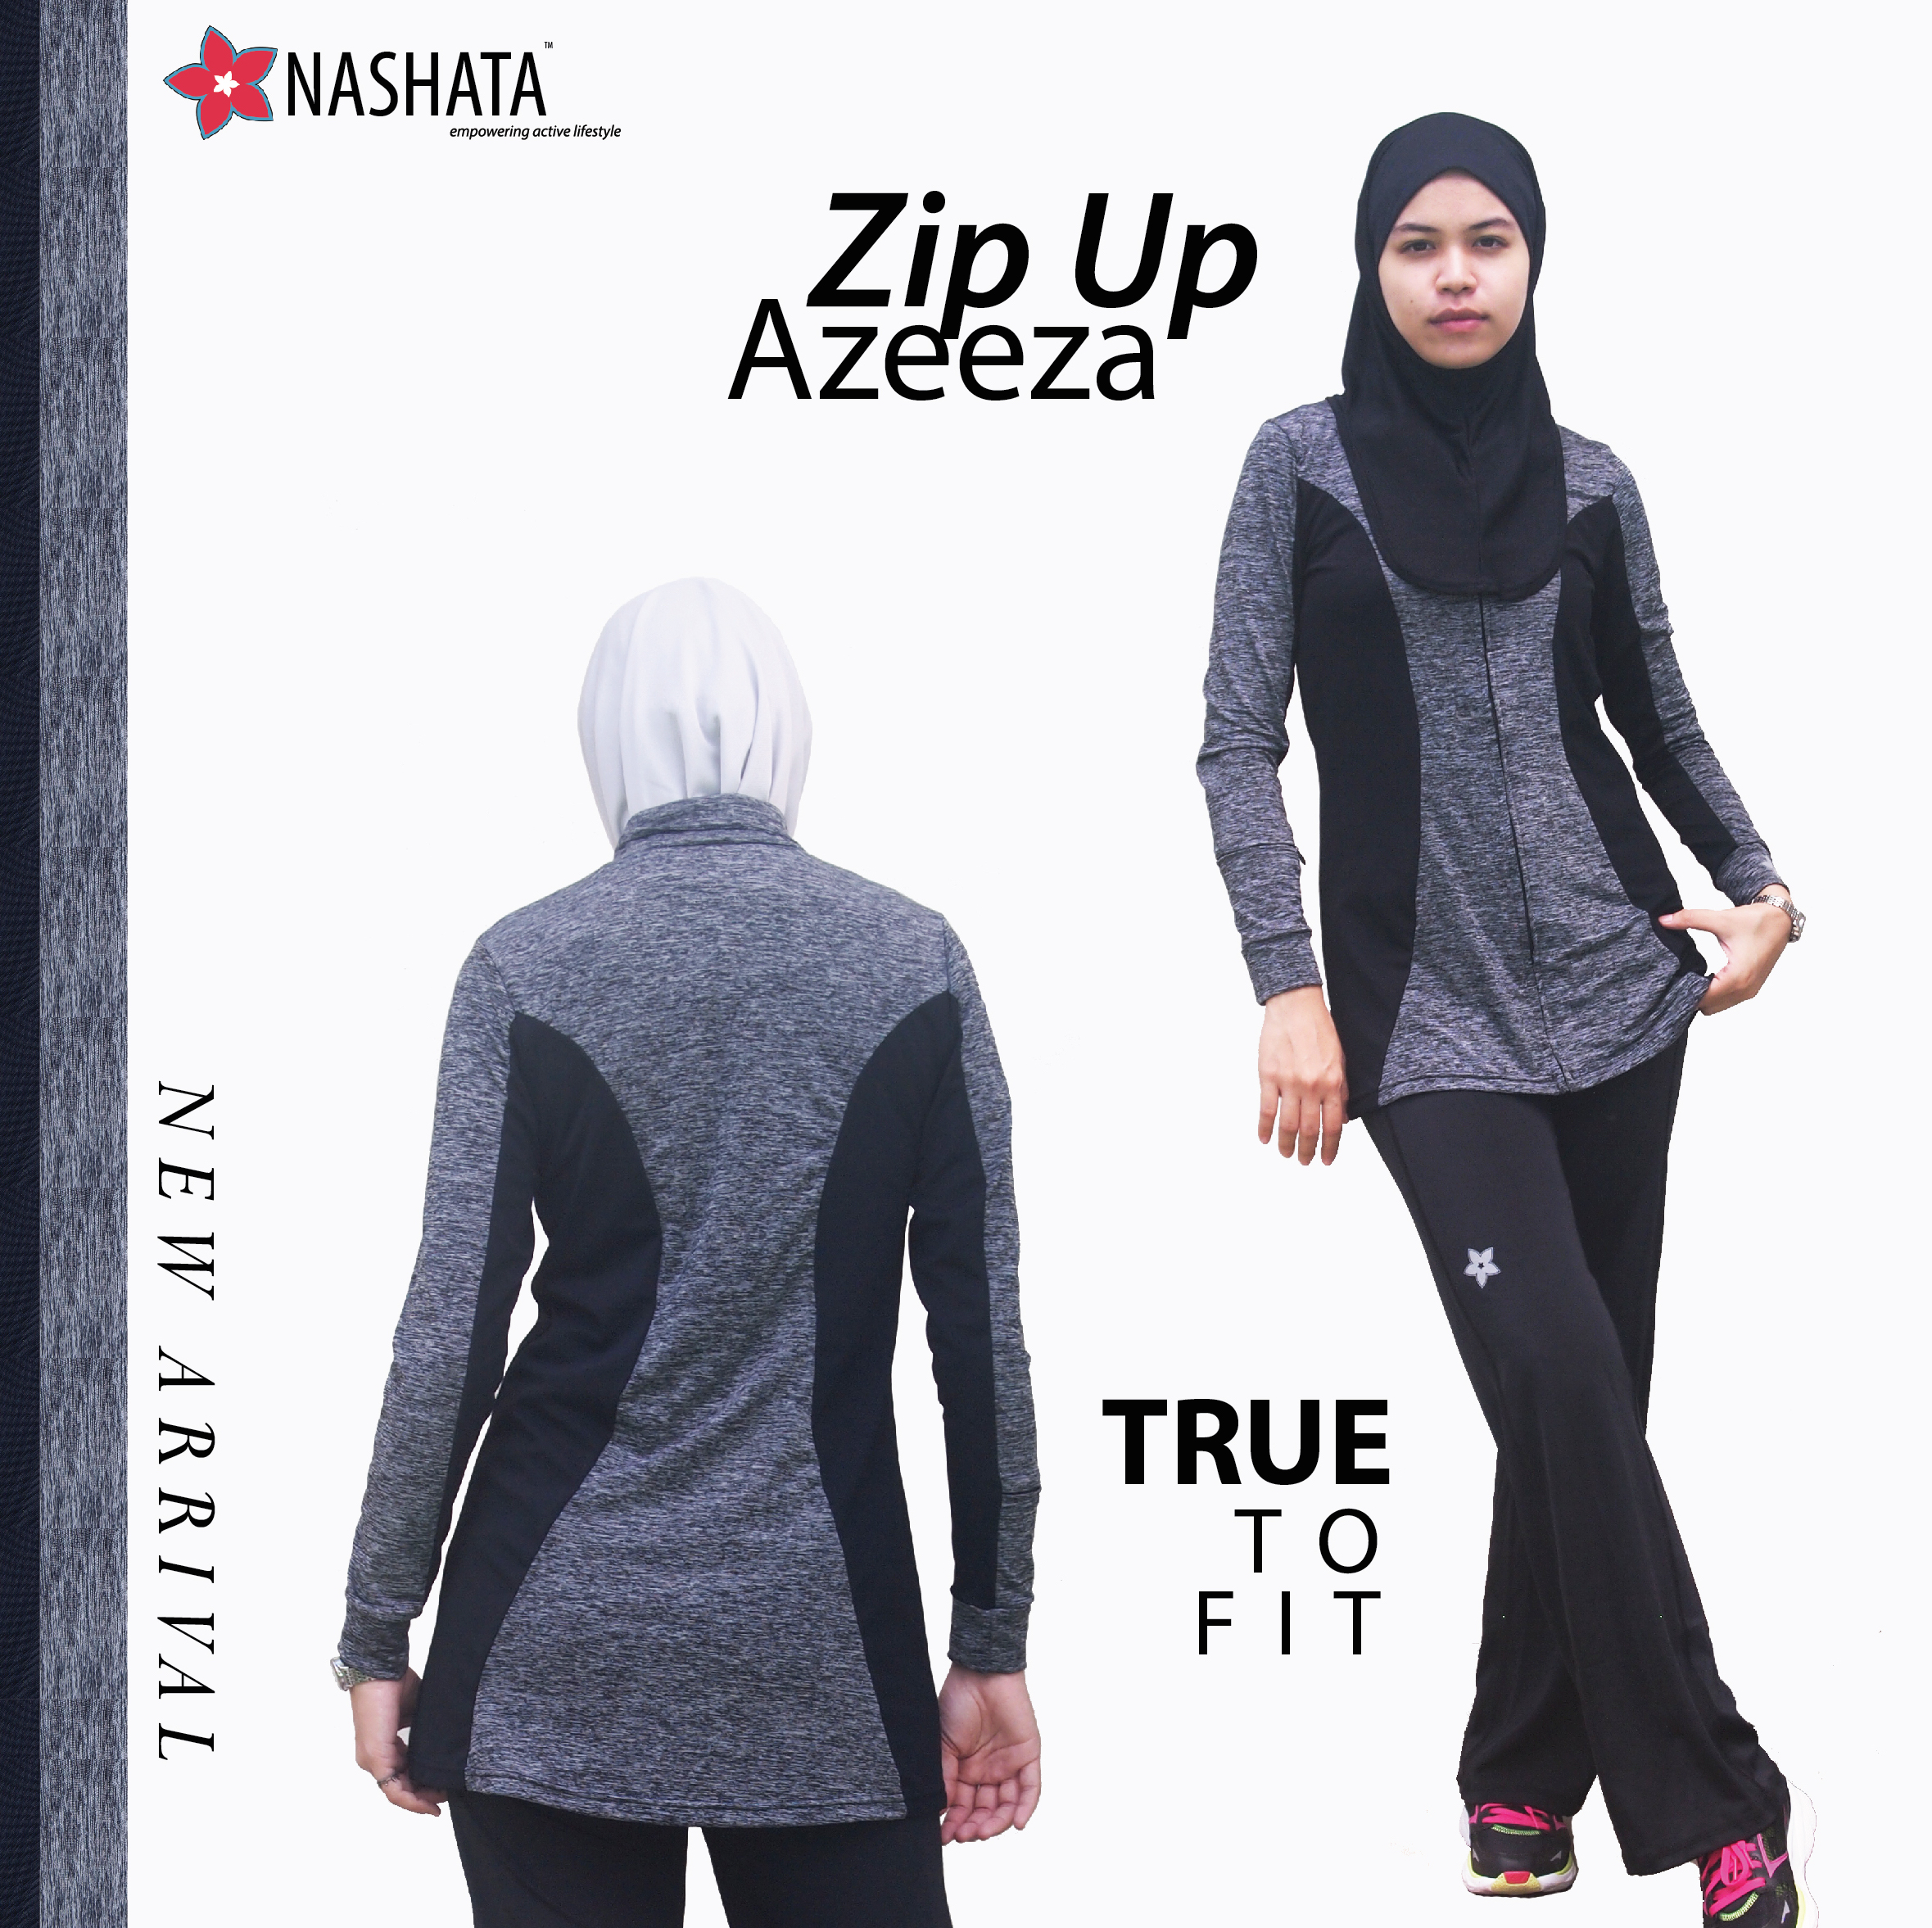 Zip Up Azeeza